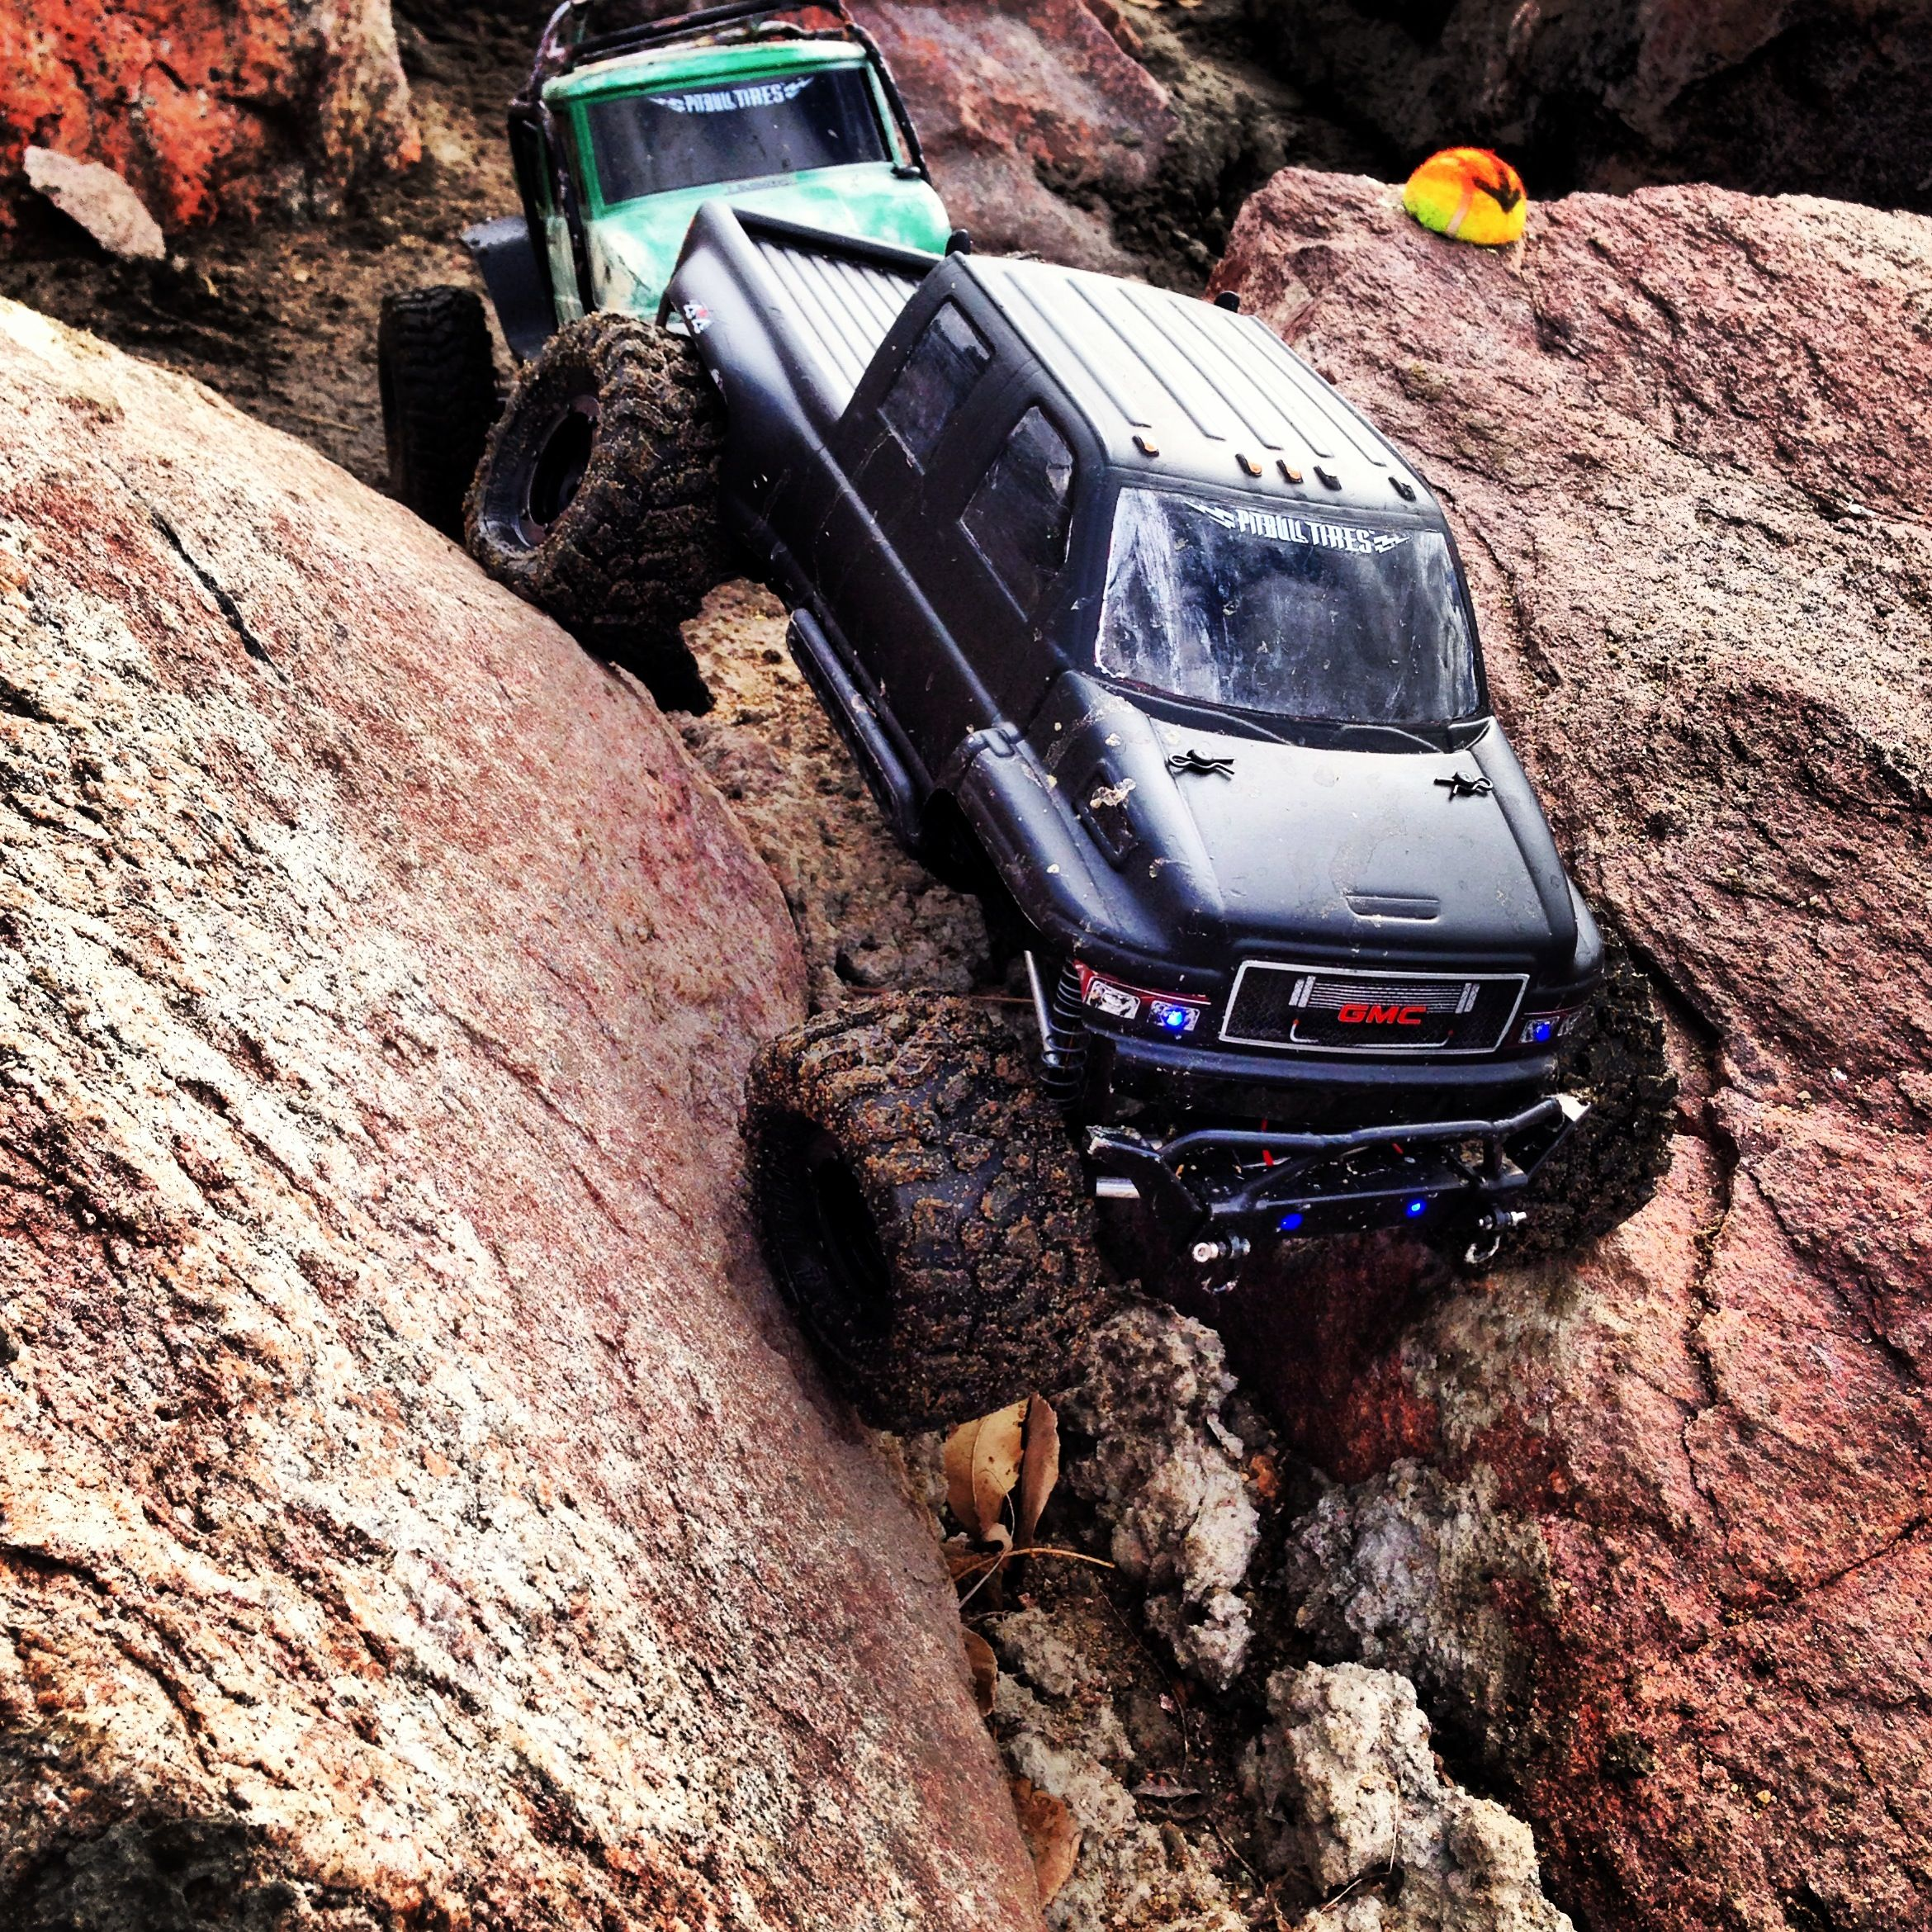 Gmc Topkick For Sale 4x4: Yet Eat That Ford Or Dodge BOY